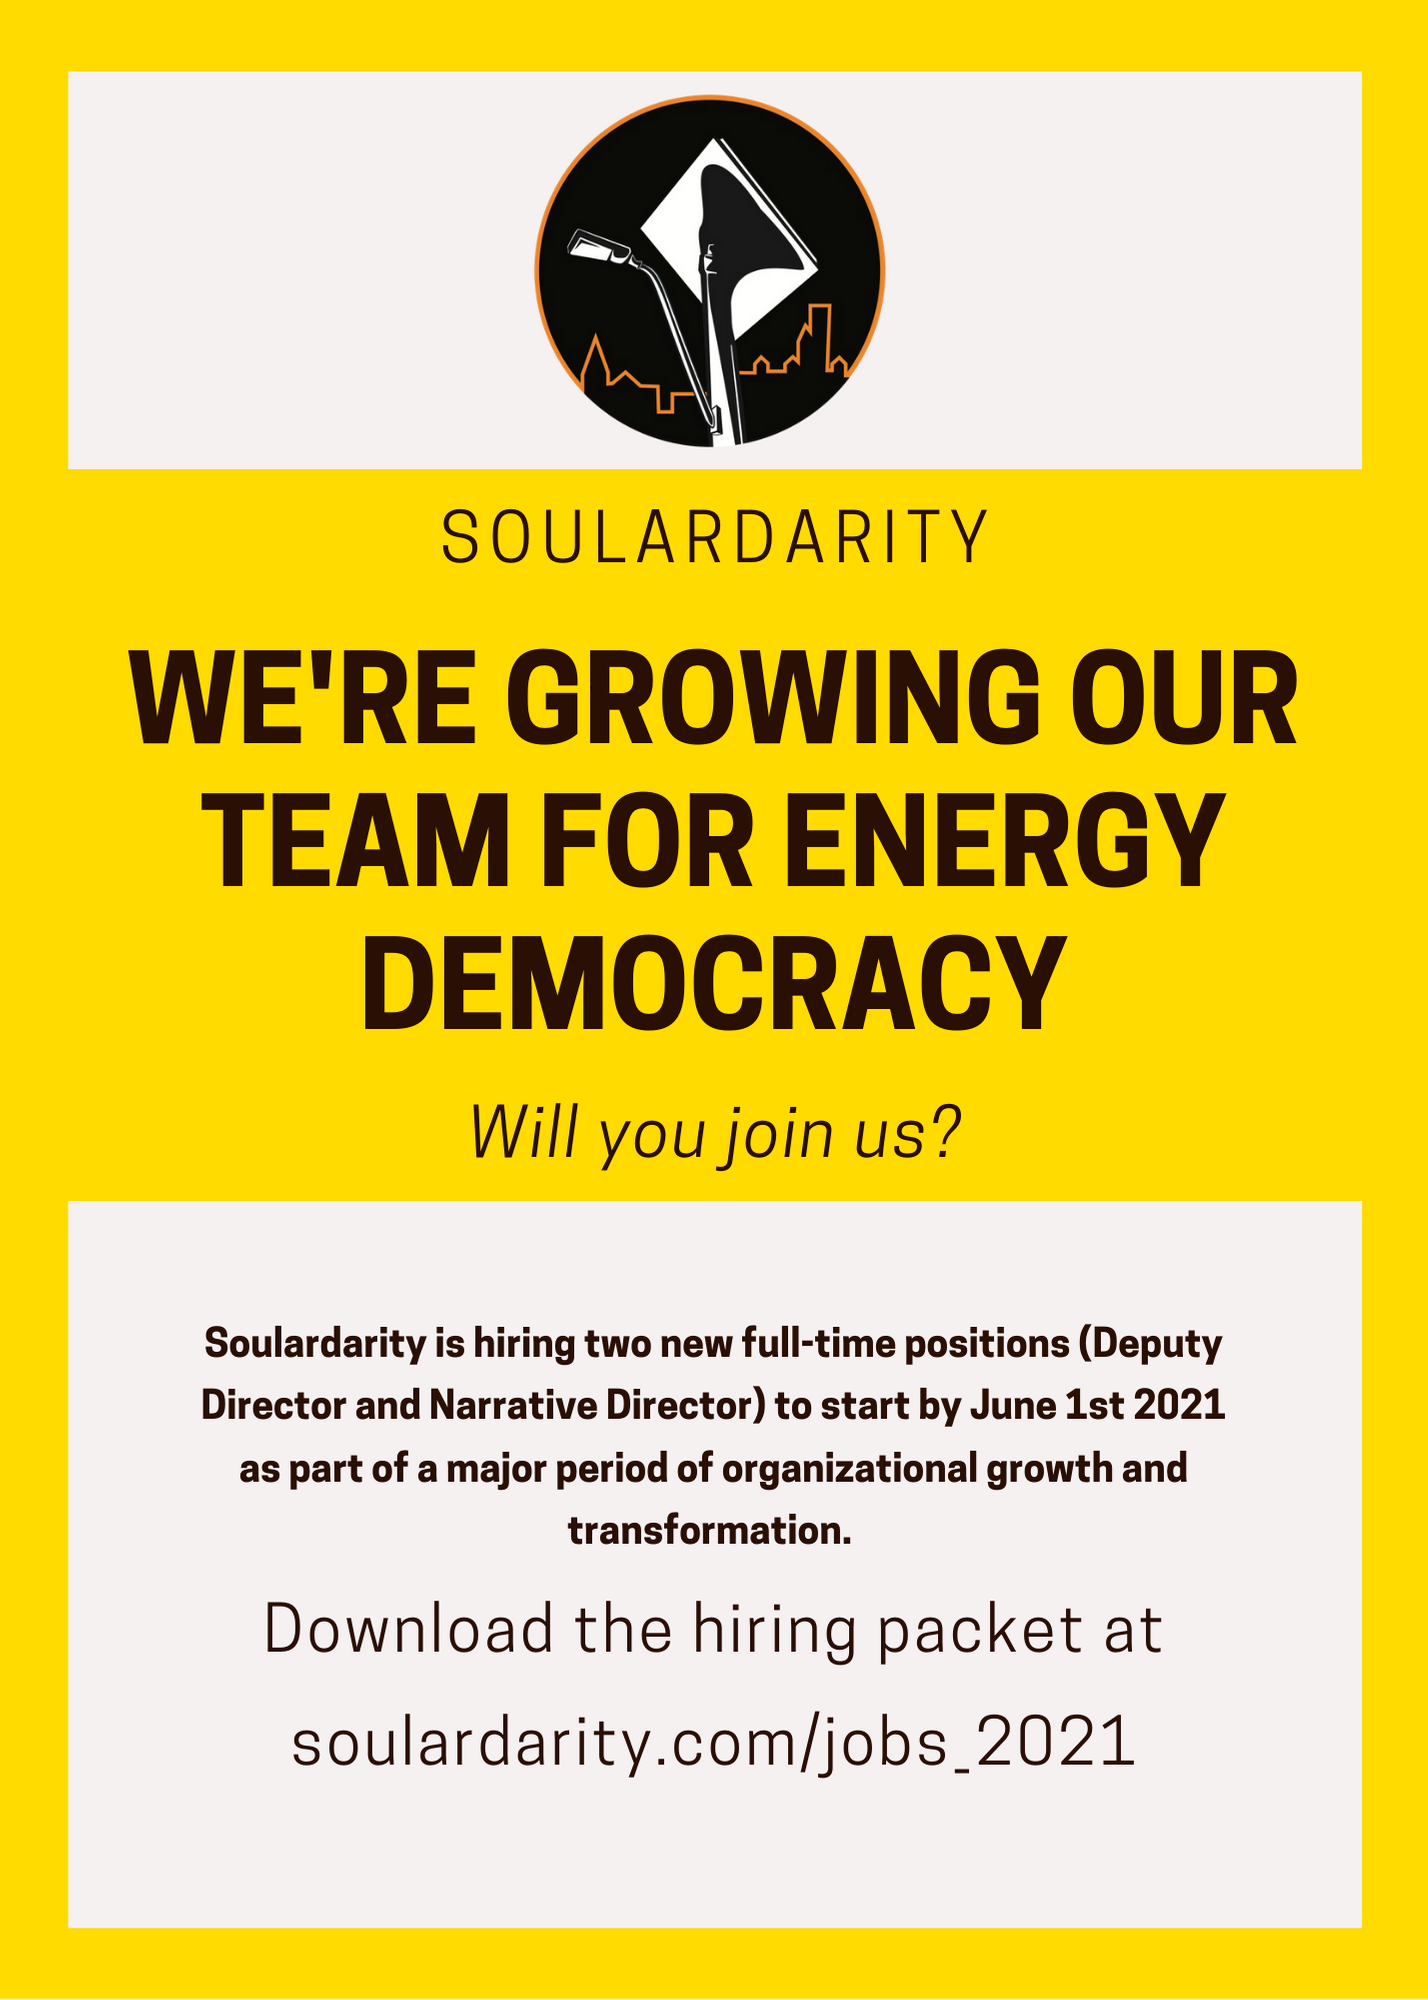 we're_growing_our_team_for_energy_democracy.png